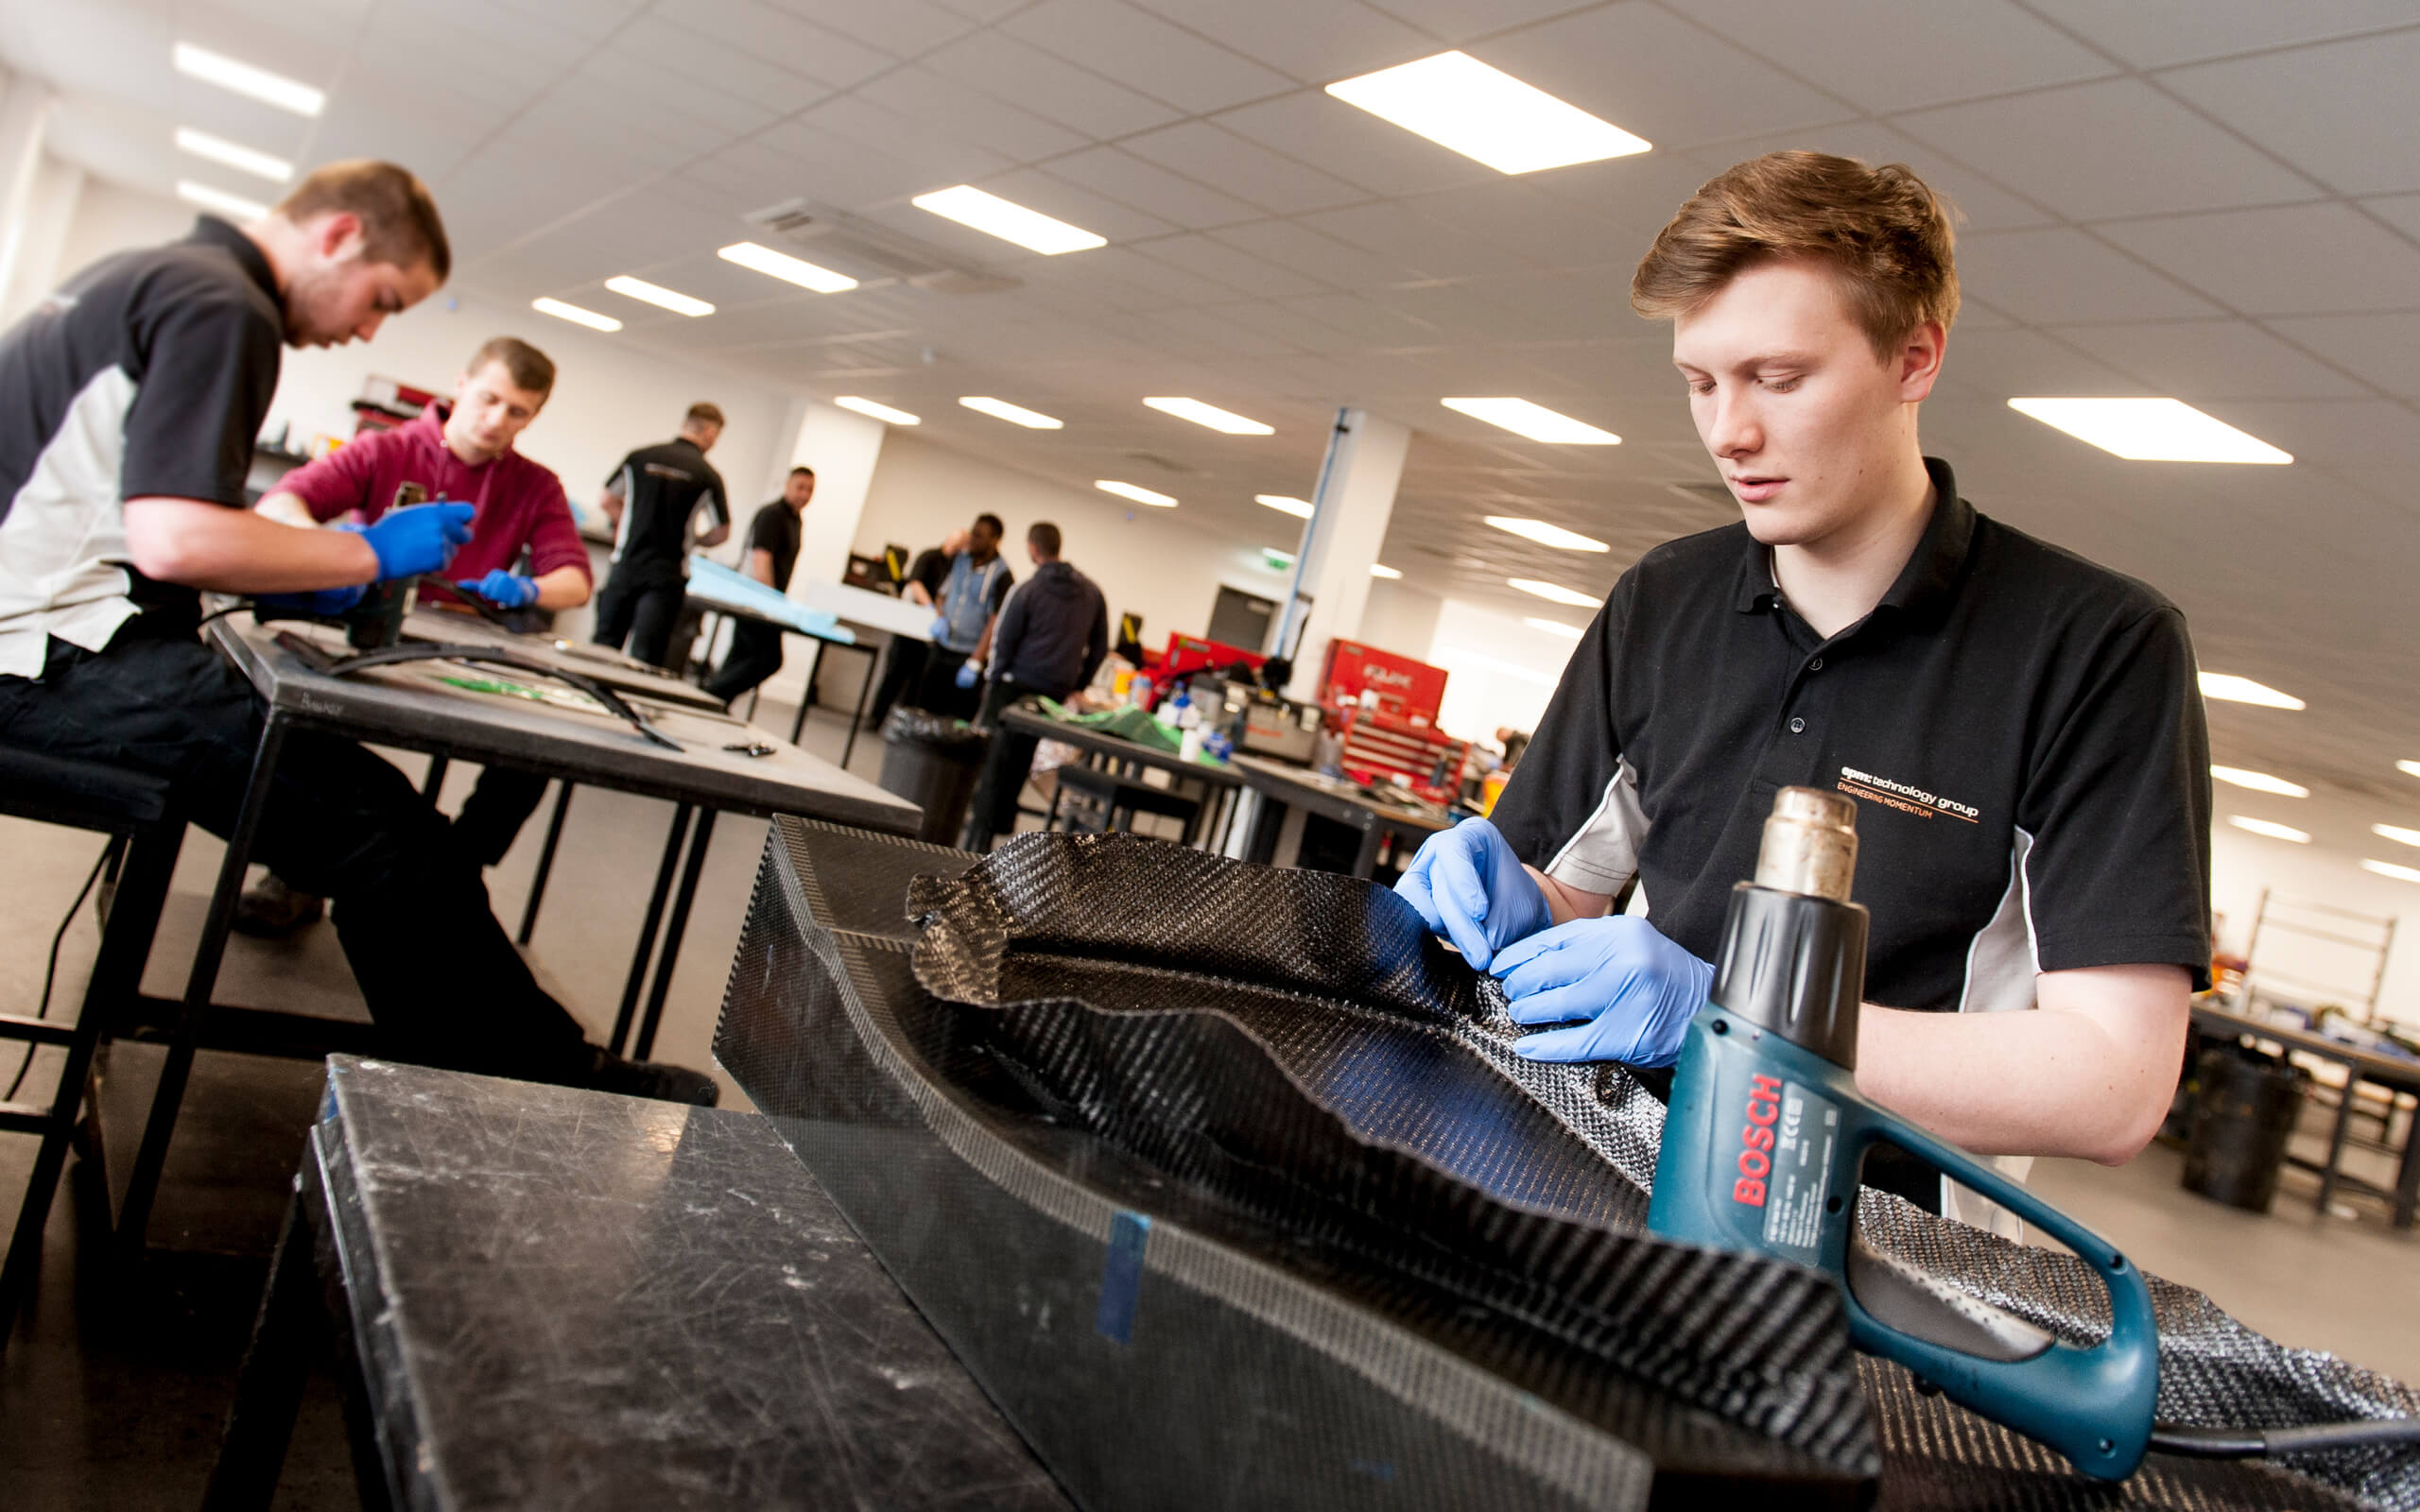 Young male working in a manufacturing environment